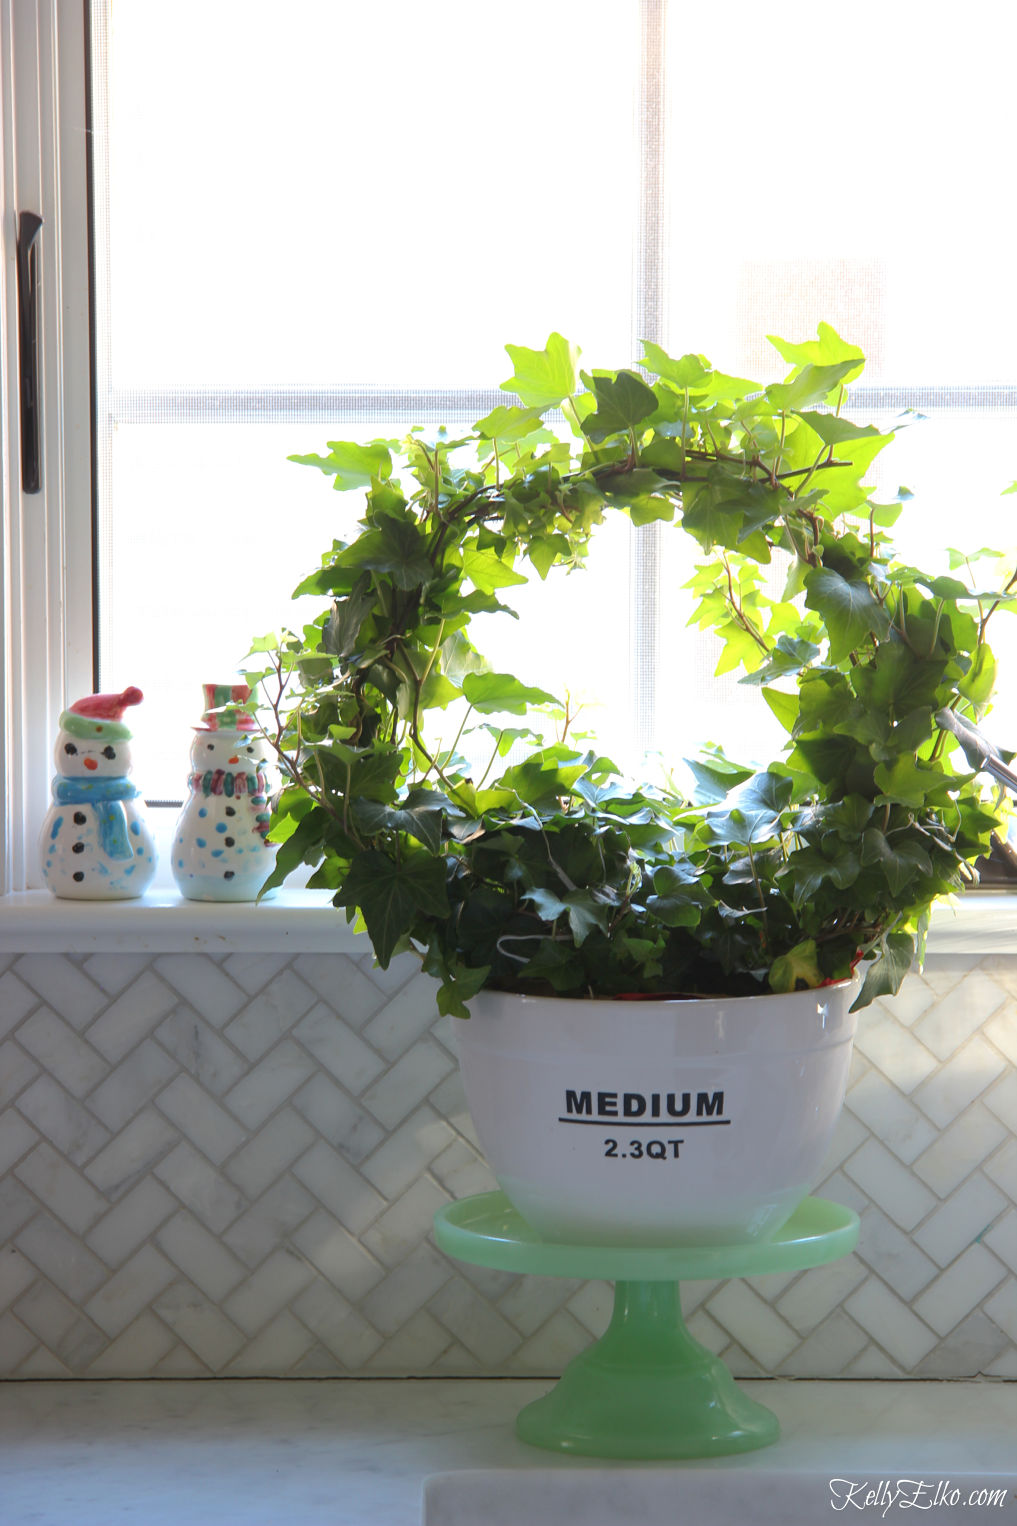 Ivy topiary in a cute bowl kellyelko.com #topiary #ivy #plantlady #houseplants #christmaskitchen